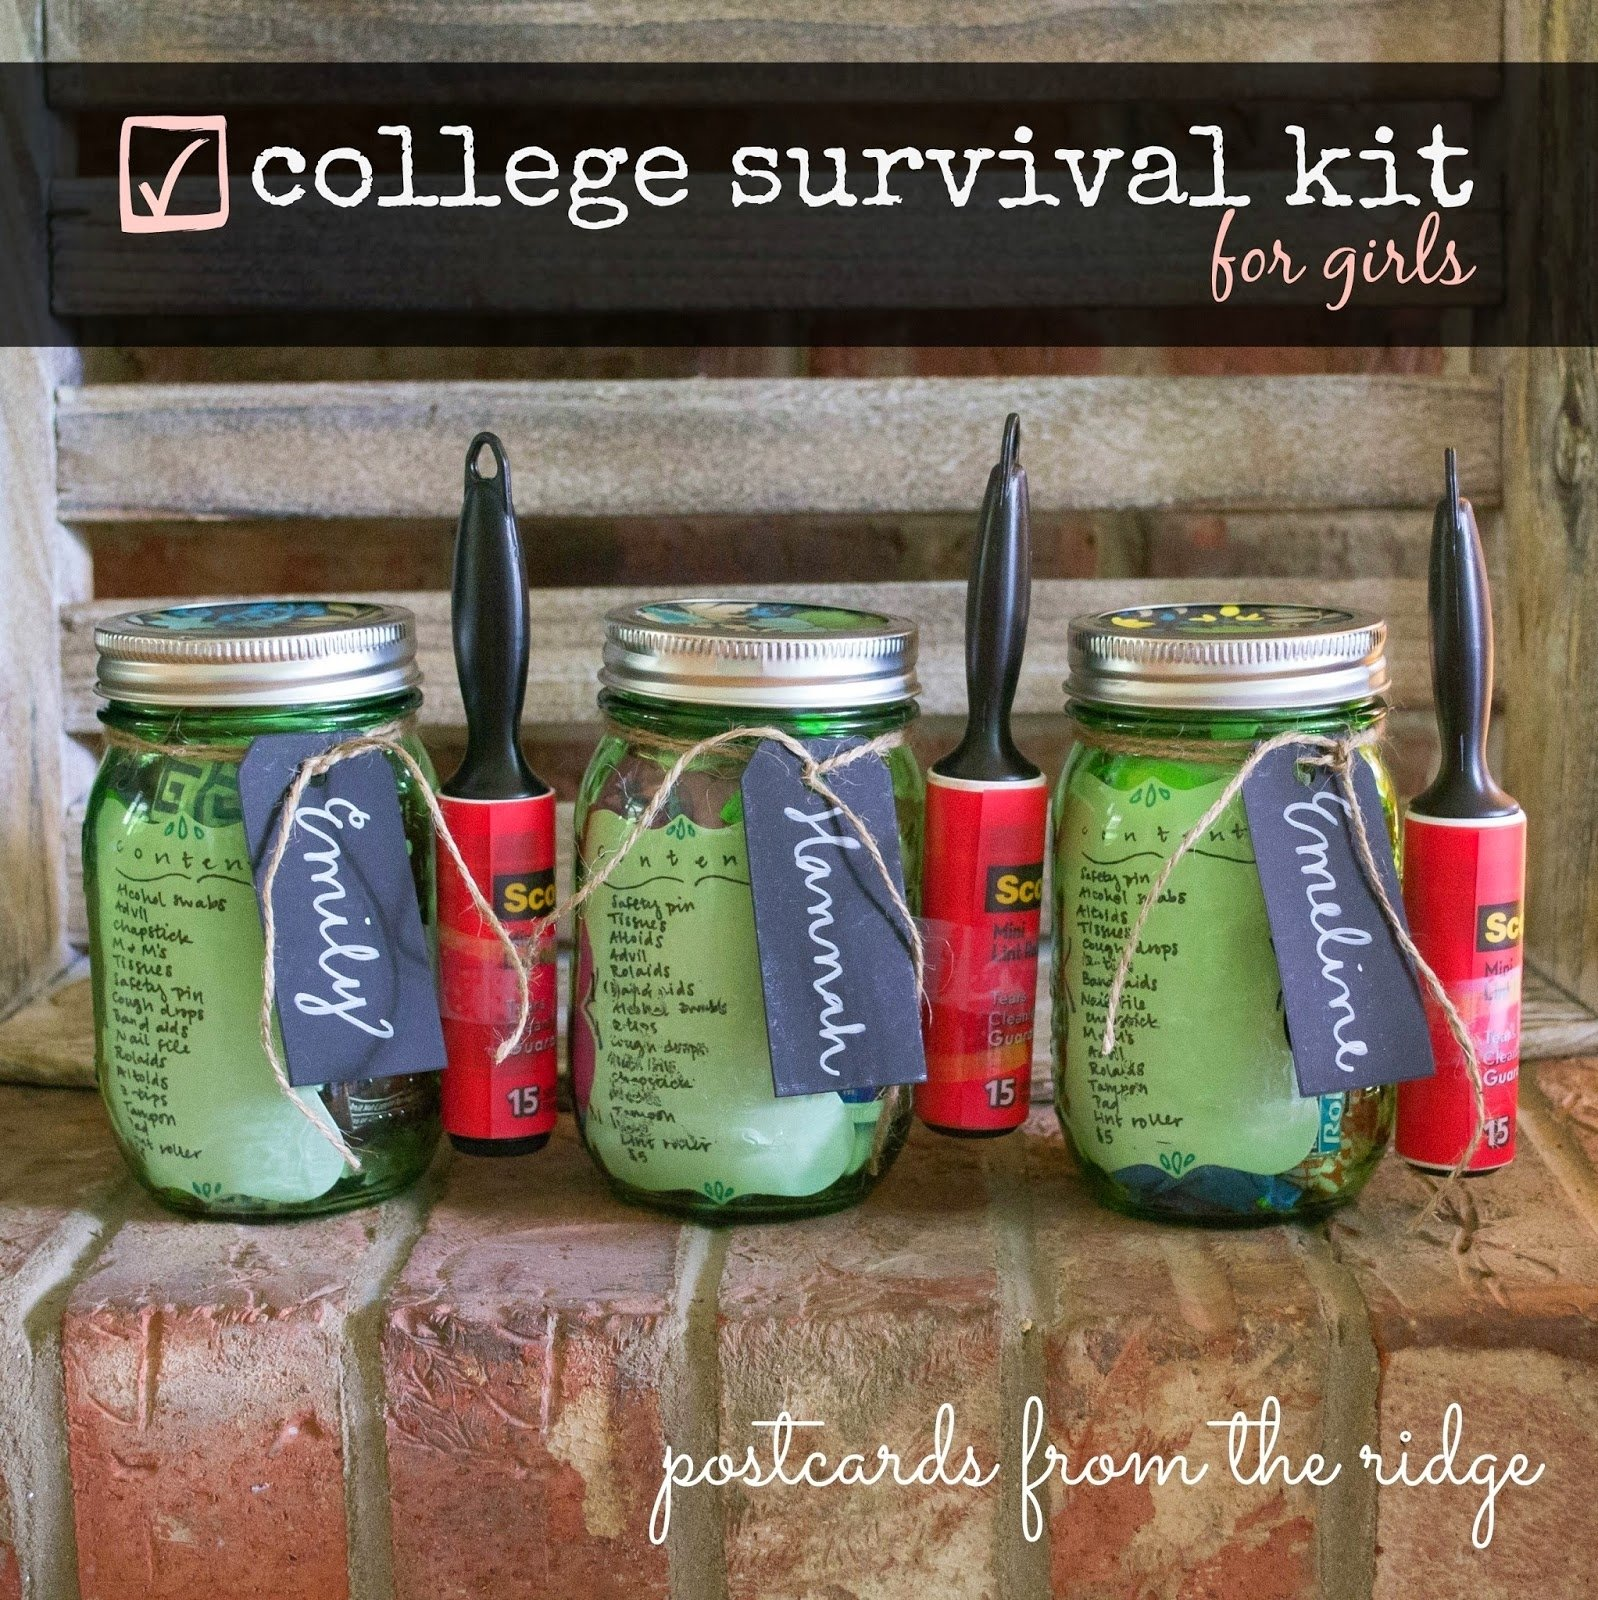 10 Unique Gift Ideas For College Freshmen mason jar college survival kit giveaway postcards from the ridge 2020